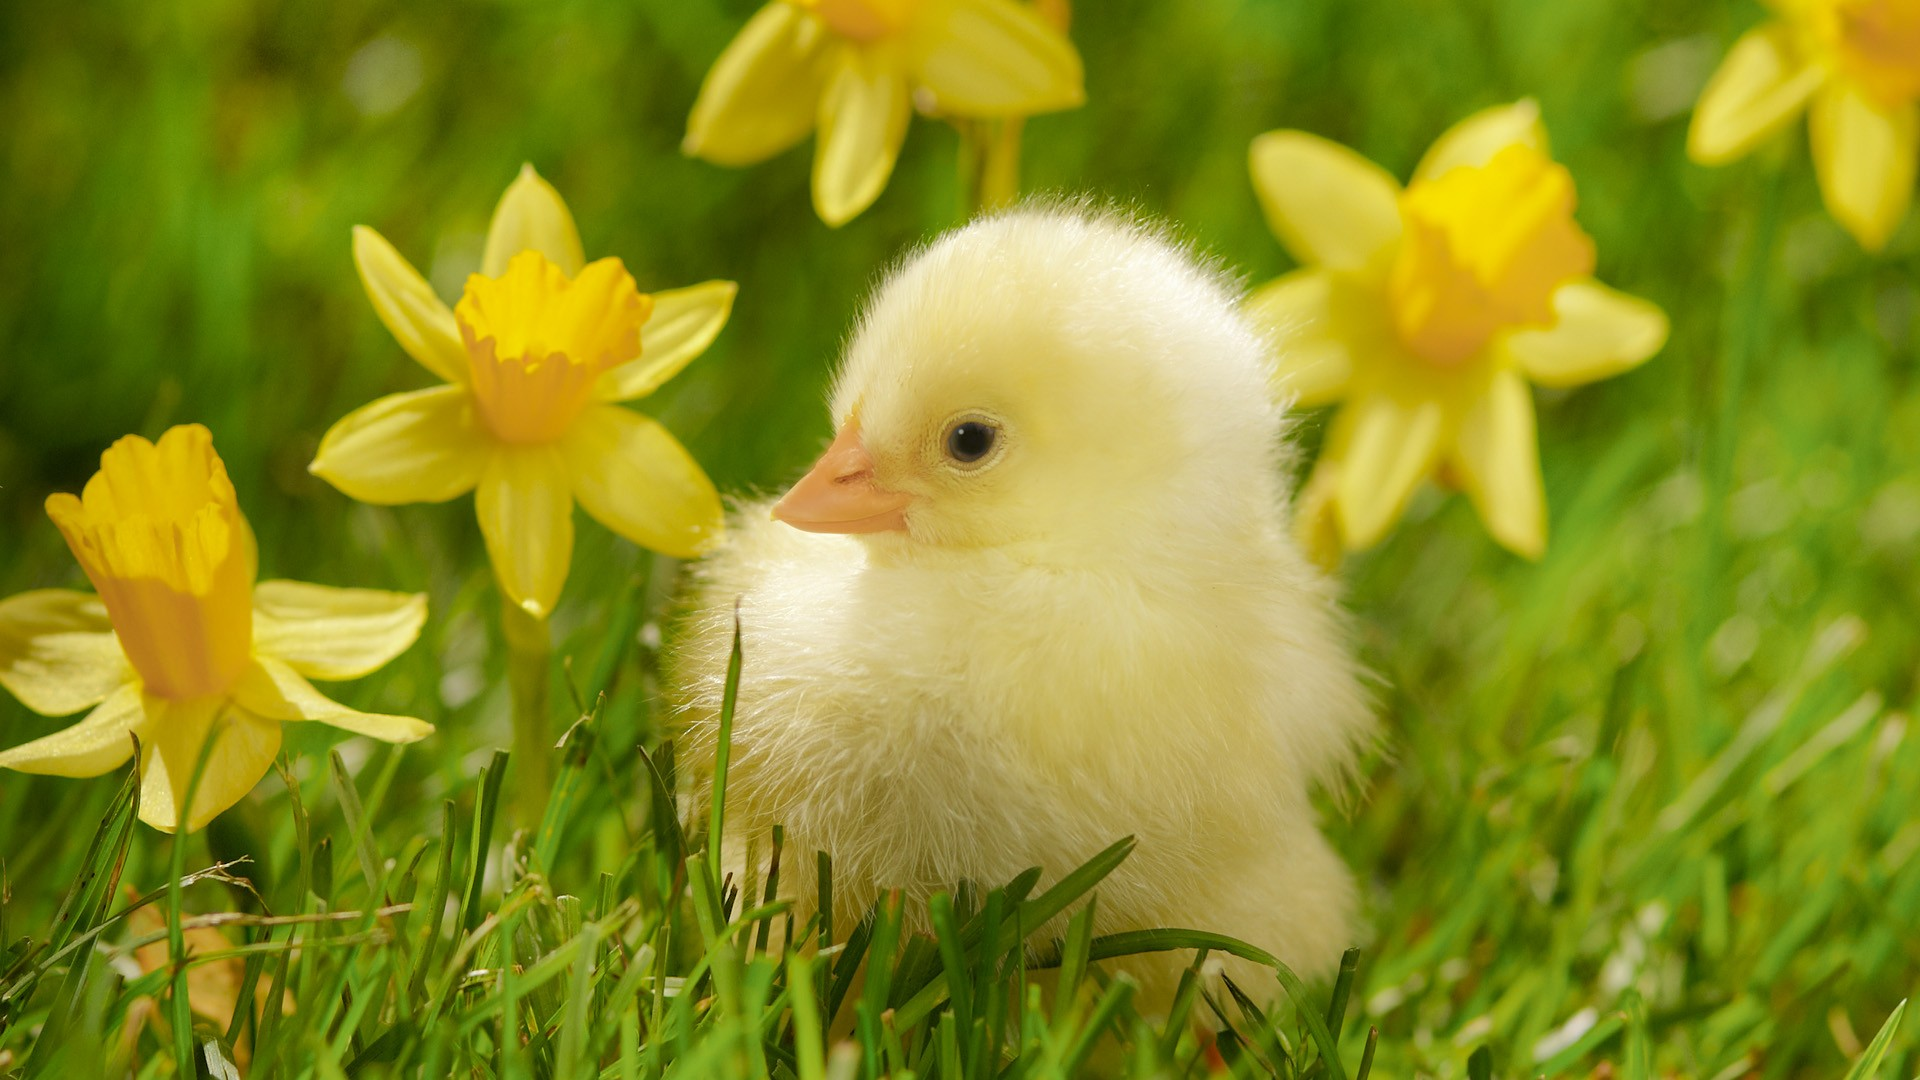 Birds-grass-spring-chickens-daffodils-yellow-flowers-1920x1080-UP-wallpaper-wp3803187